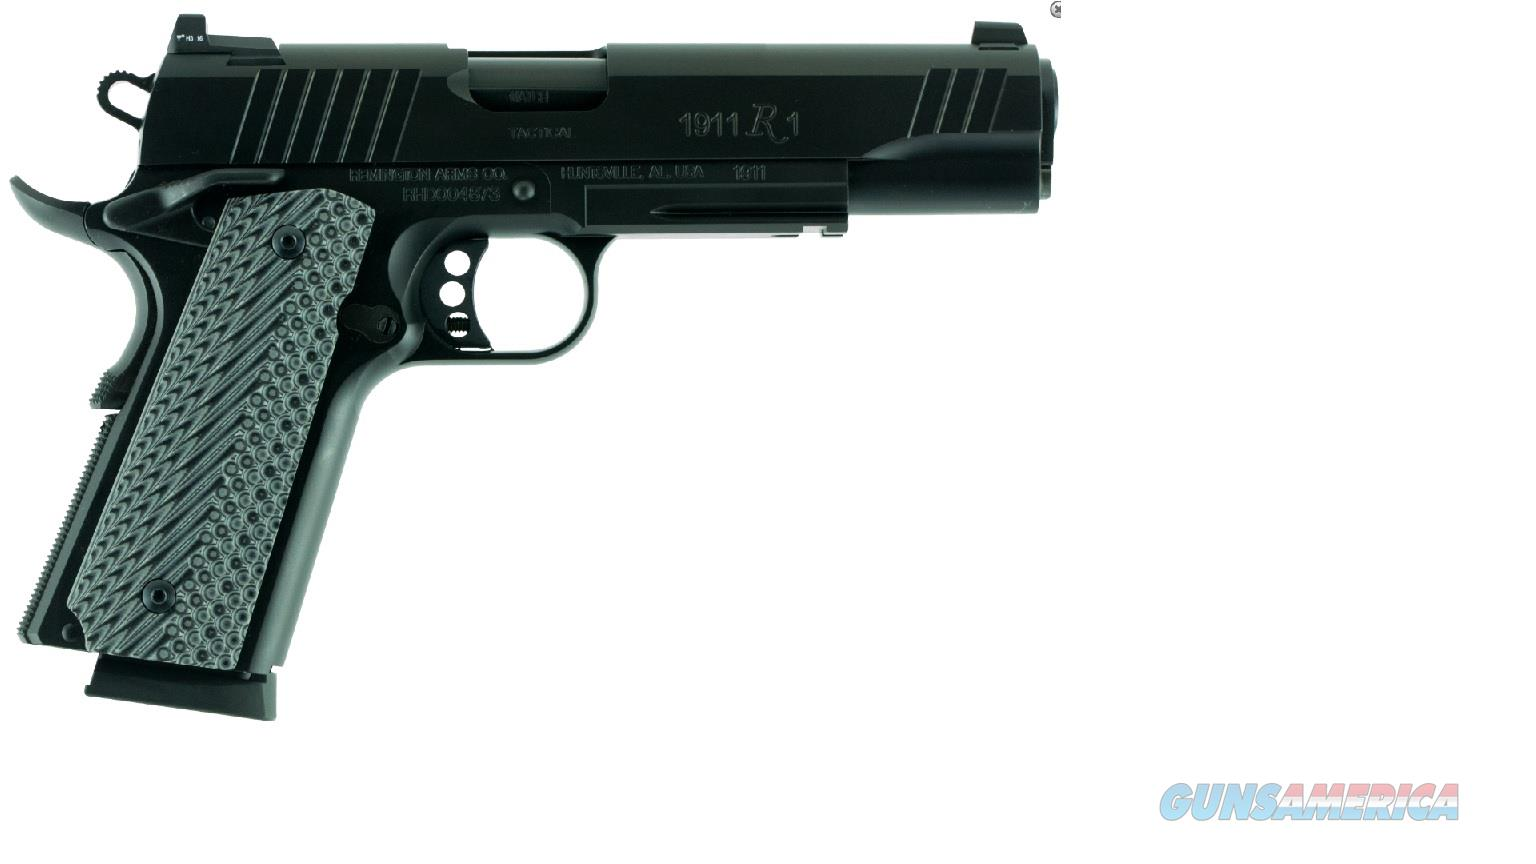 "96385 Remington 1911 R1 Tactical Semi Auto Pistol 5"" - 45acp  Guns > Pistols > Remington Pistols - Modern > 1911"